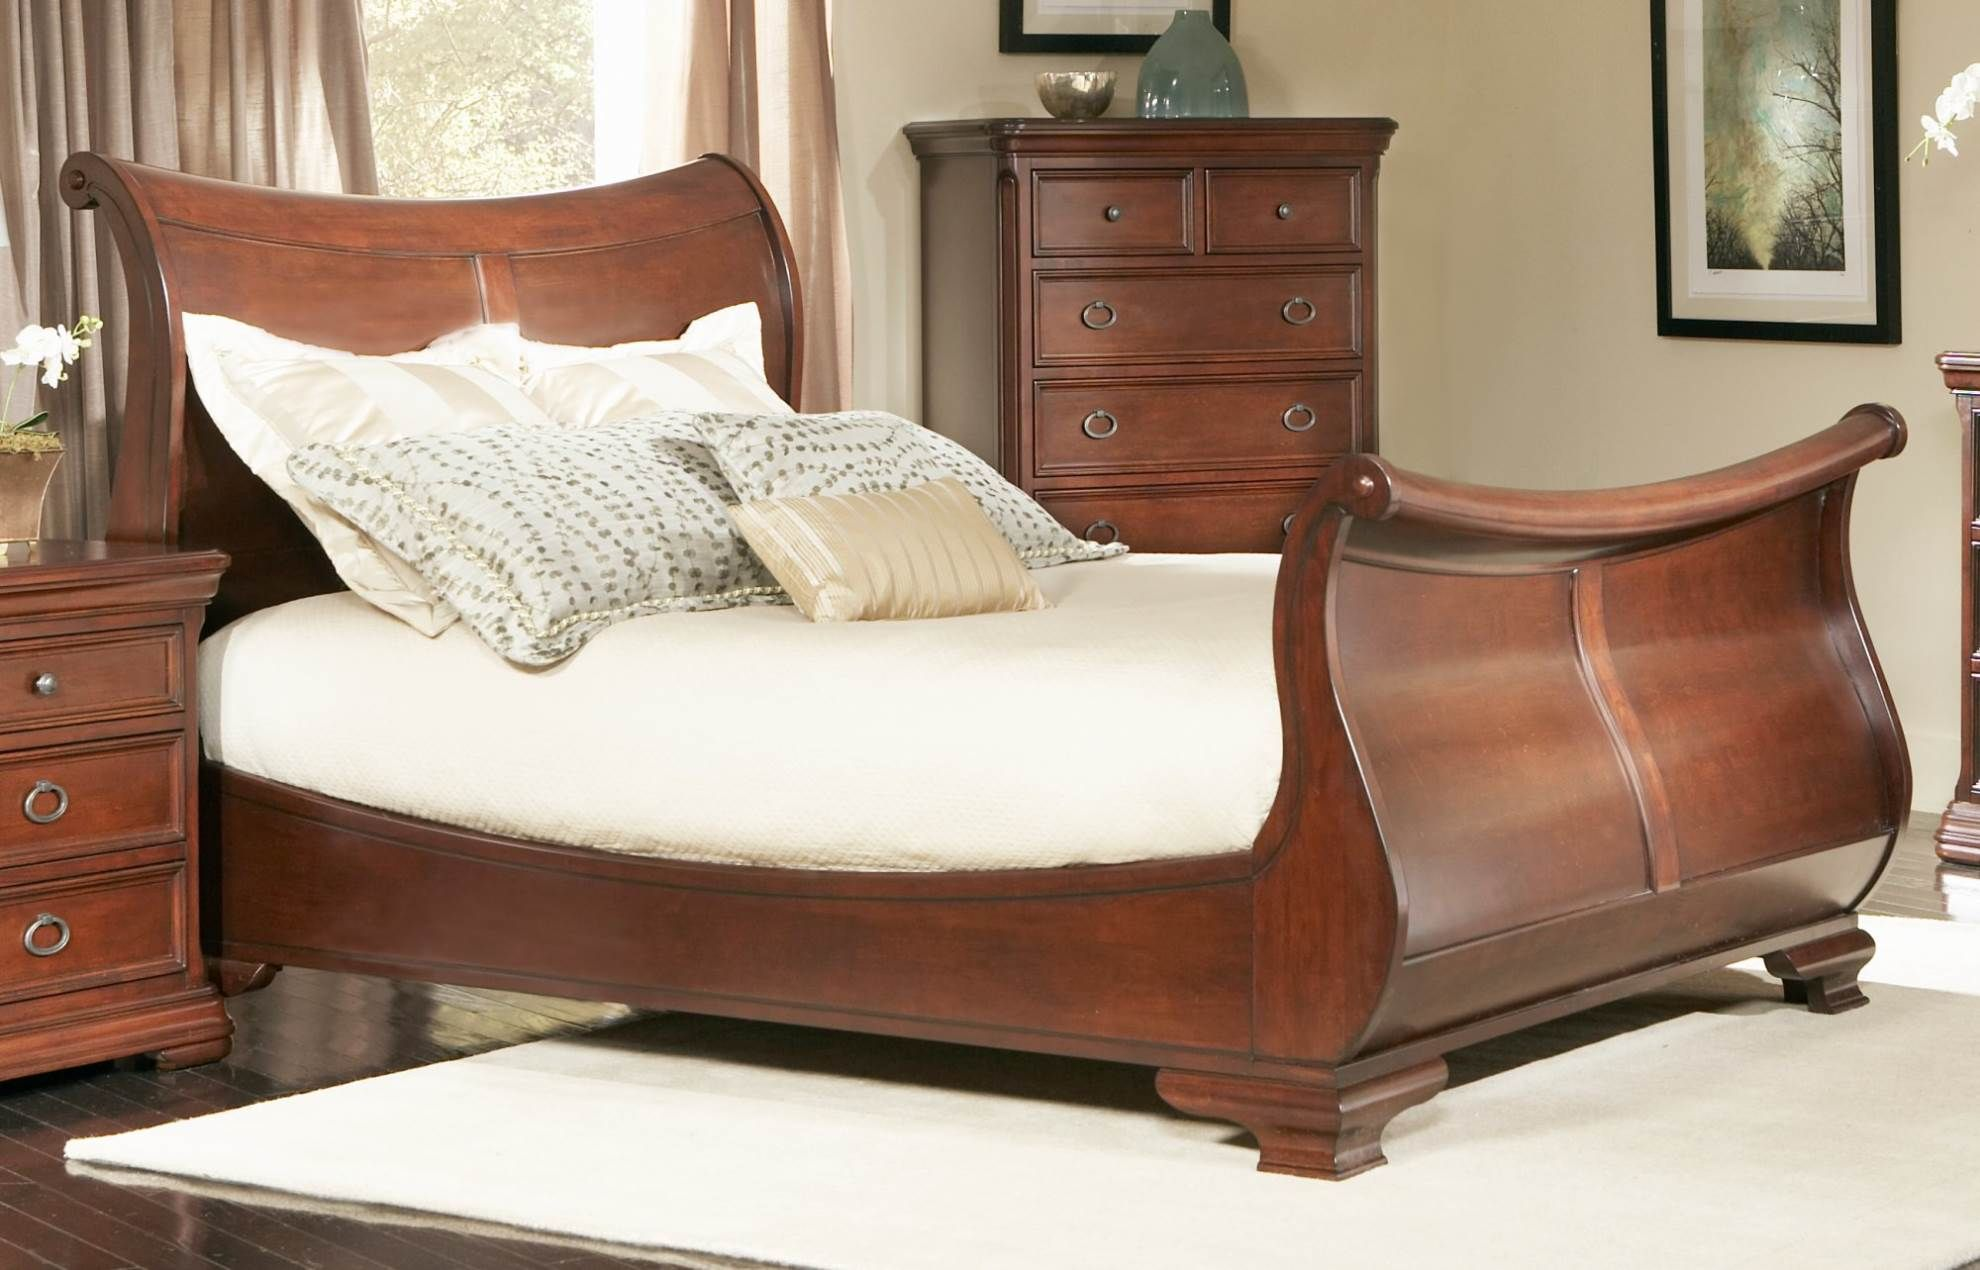 A Sleigh Bed Frame Brings Comfort And Elegance To The Bedroom Our